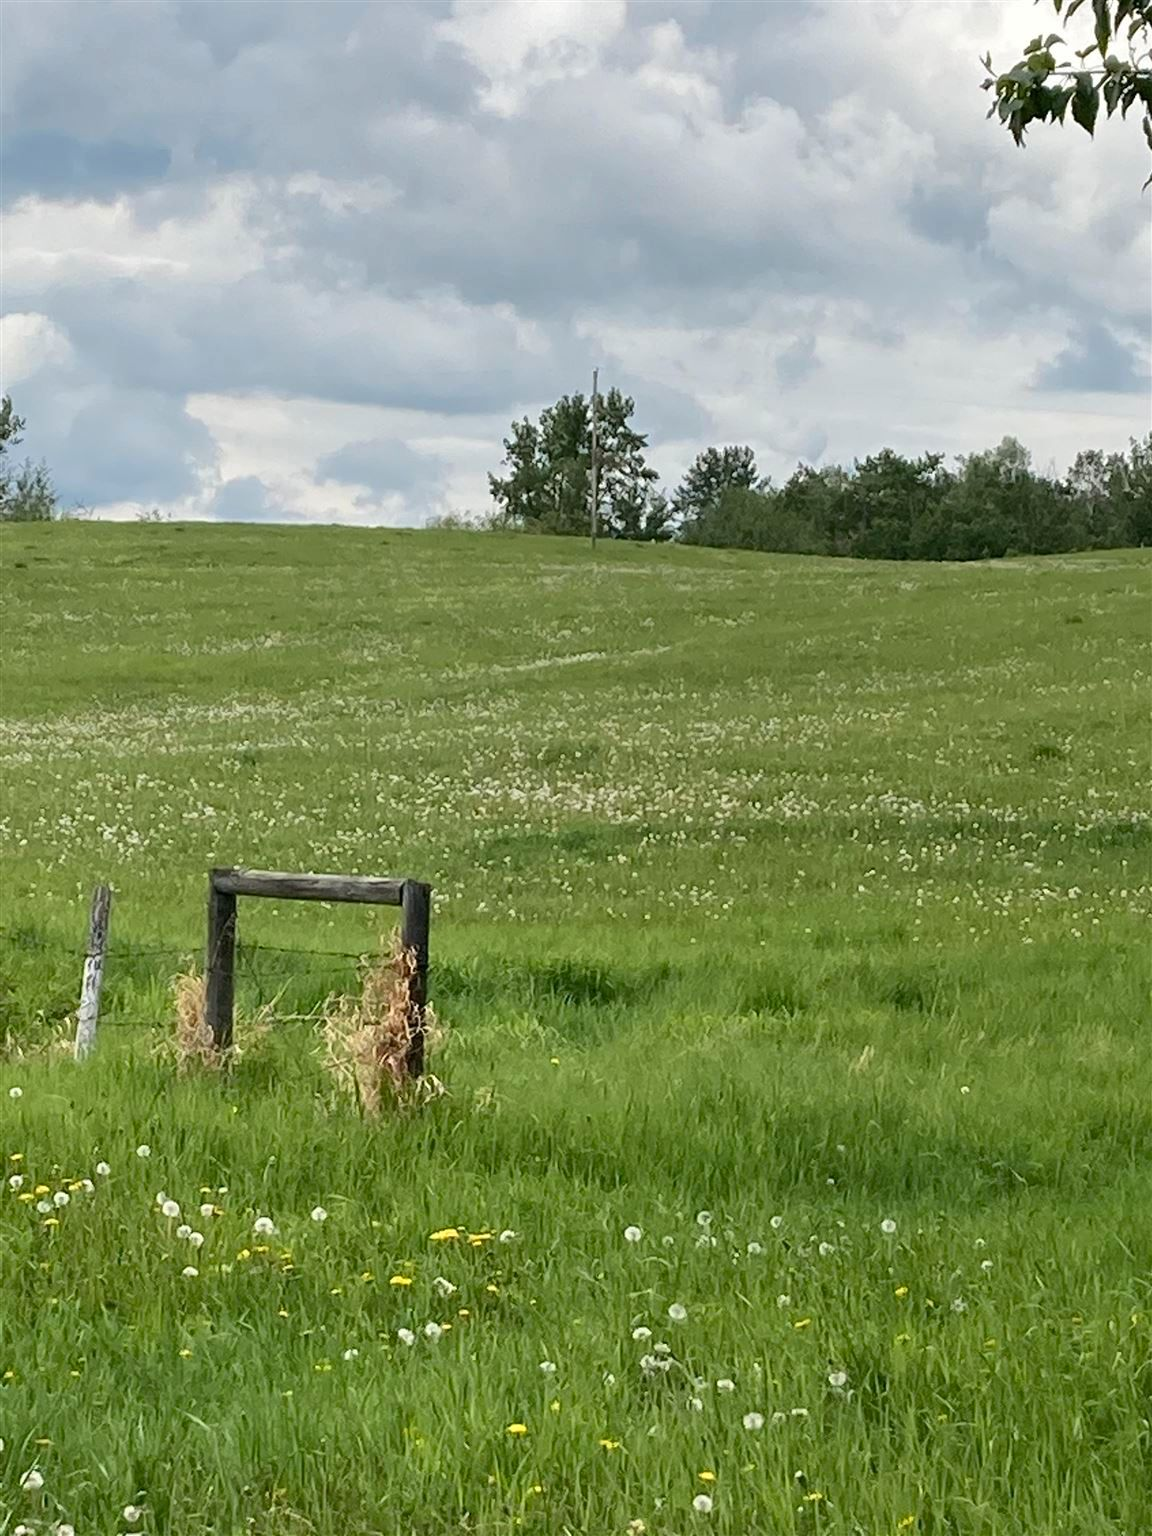 Main Photo: TWP 502 RR 215: Rural Leduc County Rural Land/Vacant Lot for sale : MLS®# E4249465